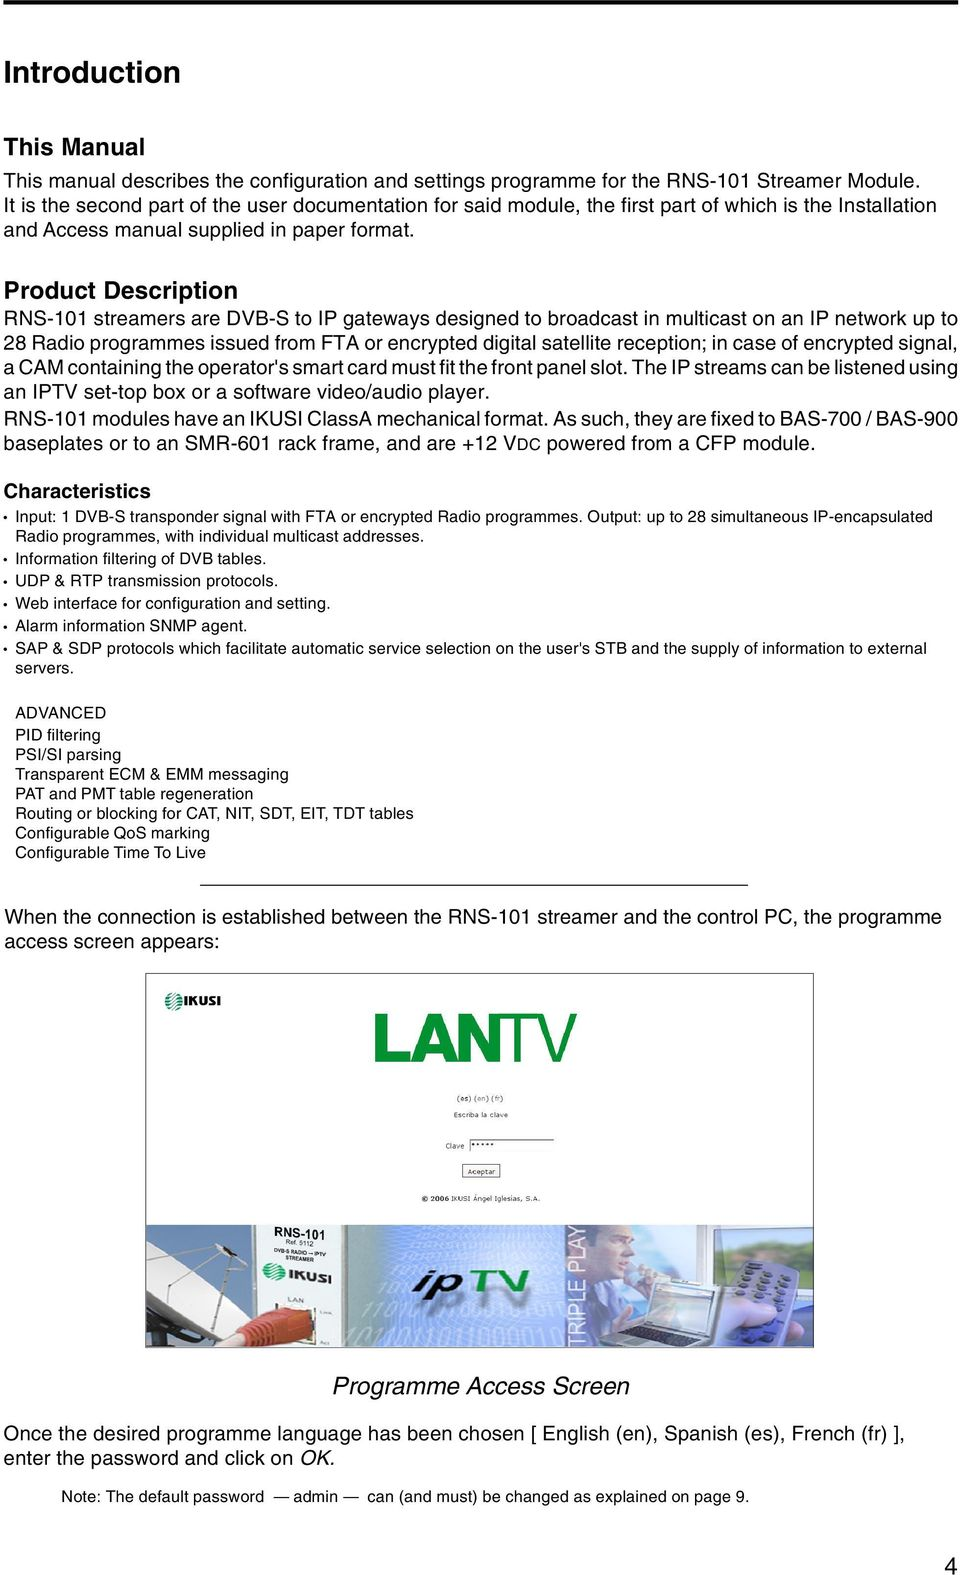 Product Description streamers are DVB-S to IP gateways designed to broadcast in multicast on an IP network up to 28 Radio programmes issued from FTA or encrypted digital satellite reception; in case